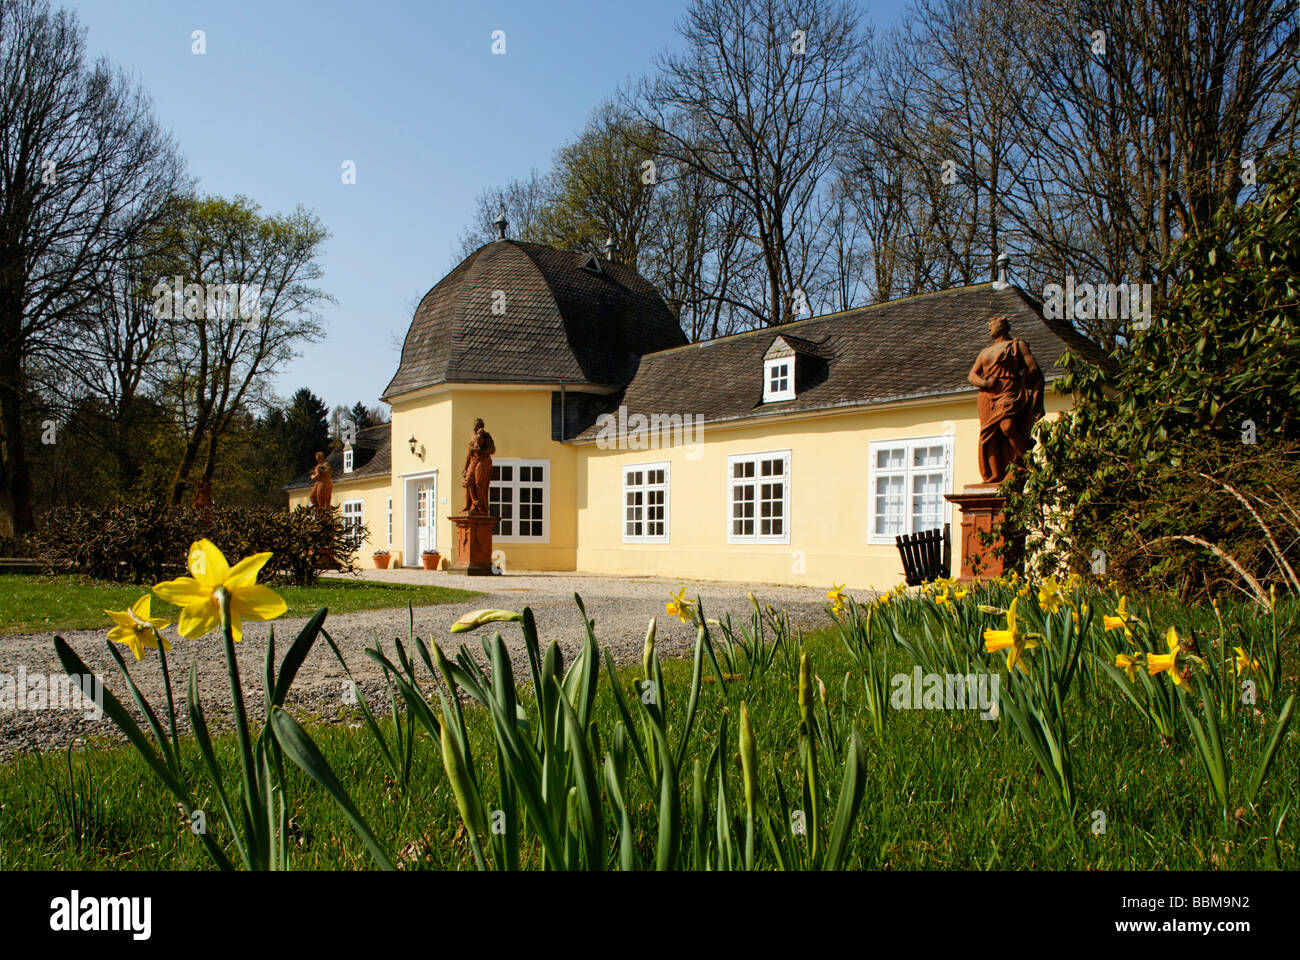 Orangery, civil registry, palace garden, statues, daffodils (Narcissus sp.), Berleburg Castle, Bad Berleburg, district - Stock Image